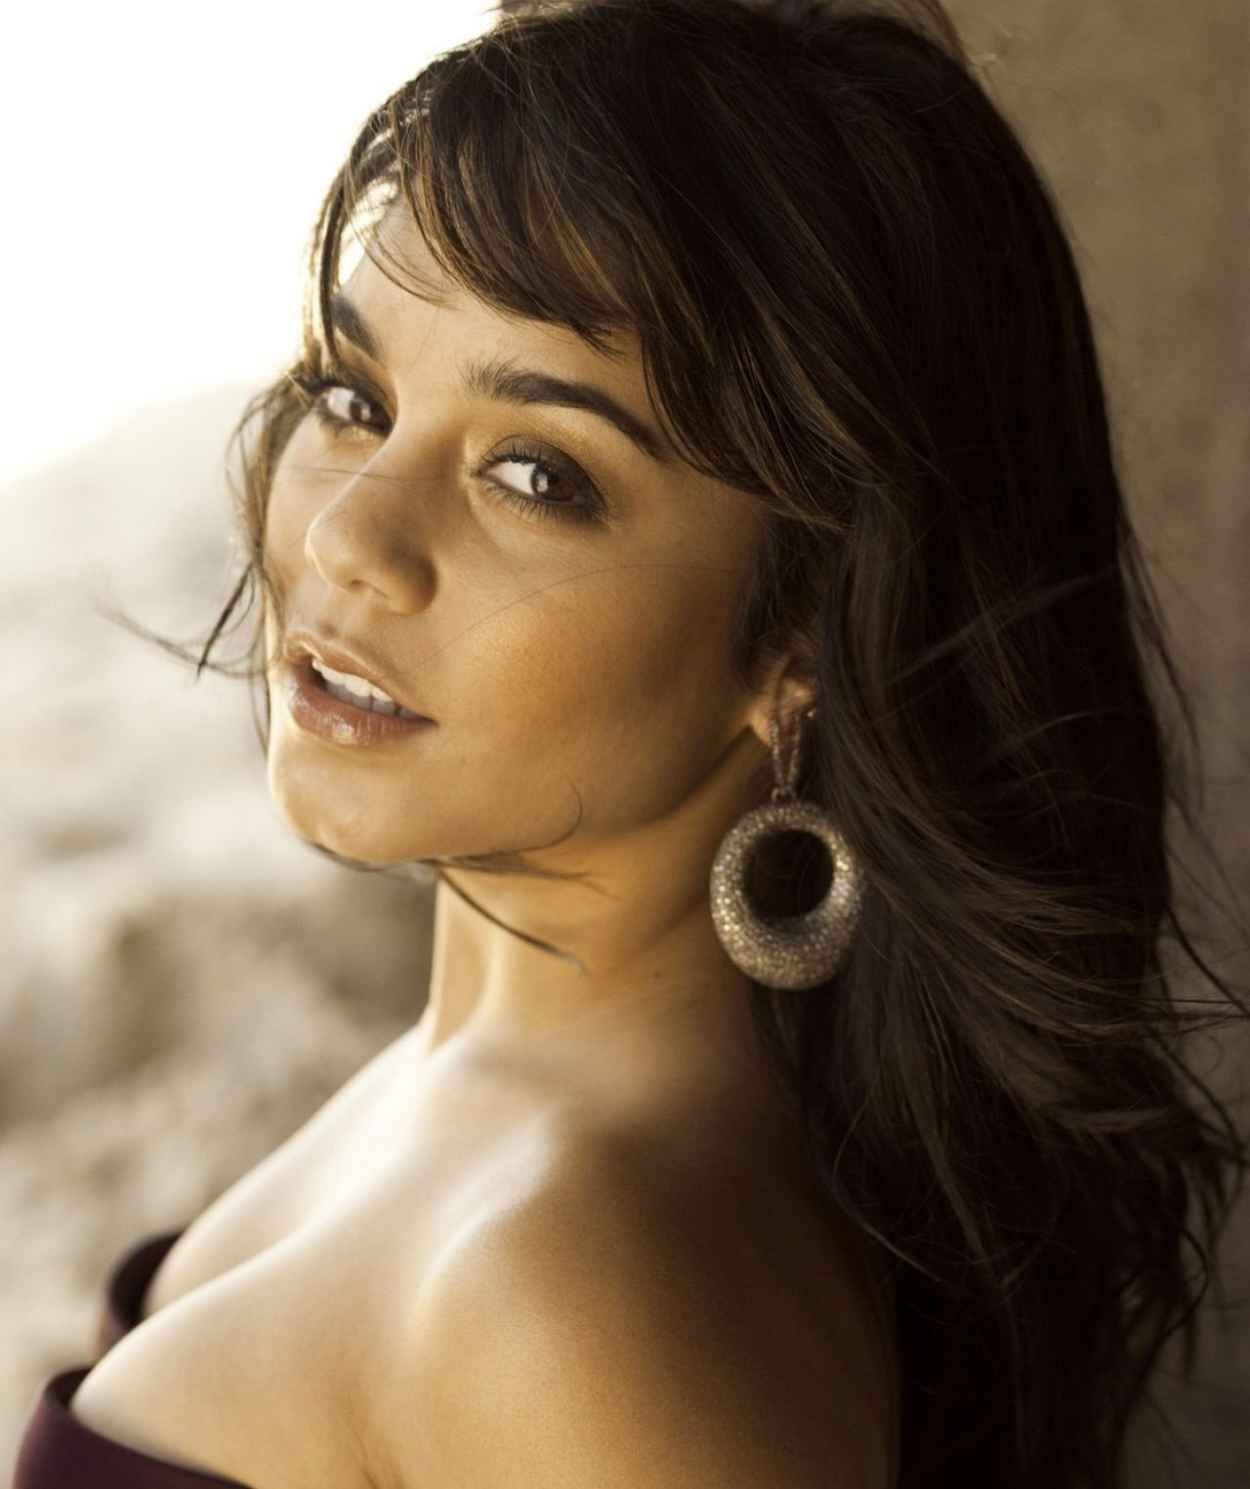 Vanessa Hudgens Photoshoot for ALLURE Magazine - October 2009-1